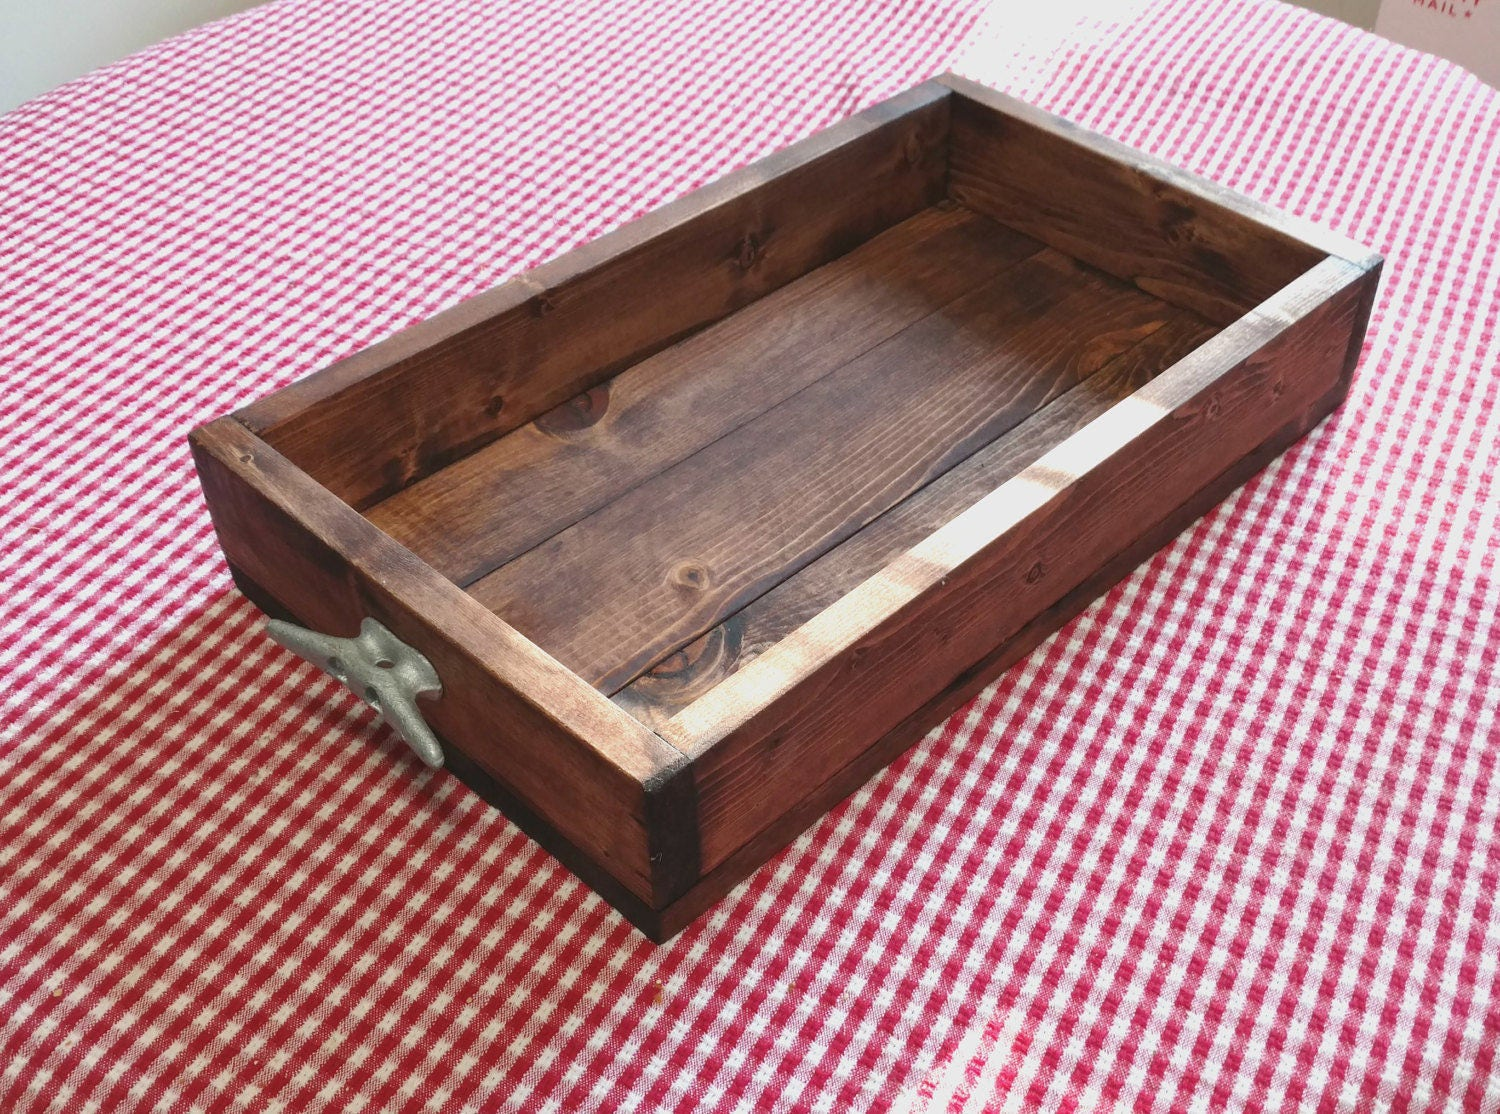 Rustic wood tray coffee table box serving tray wedding decor Decorative trays for coffee table